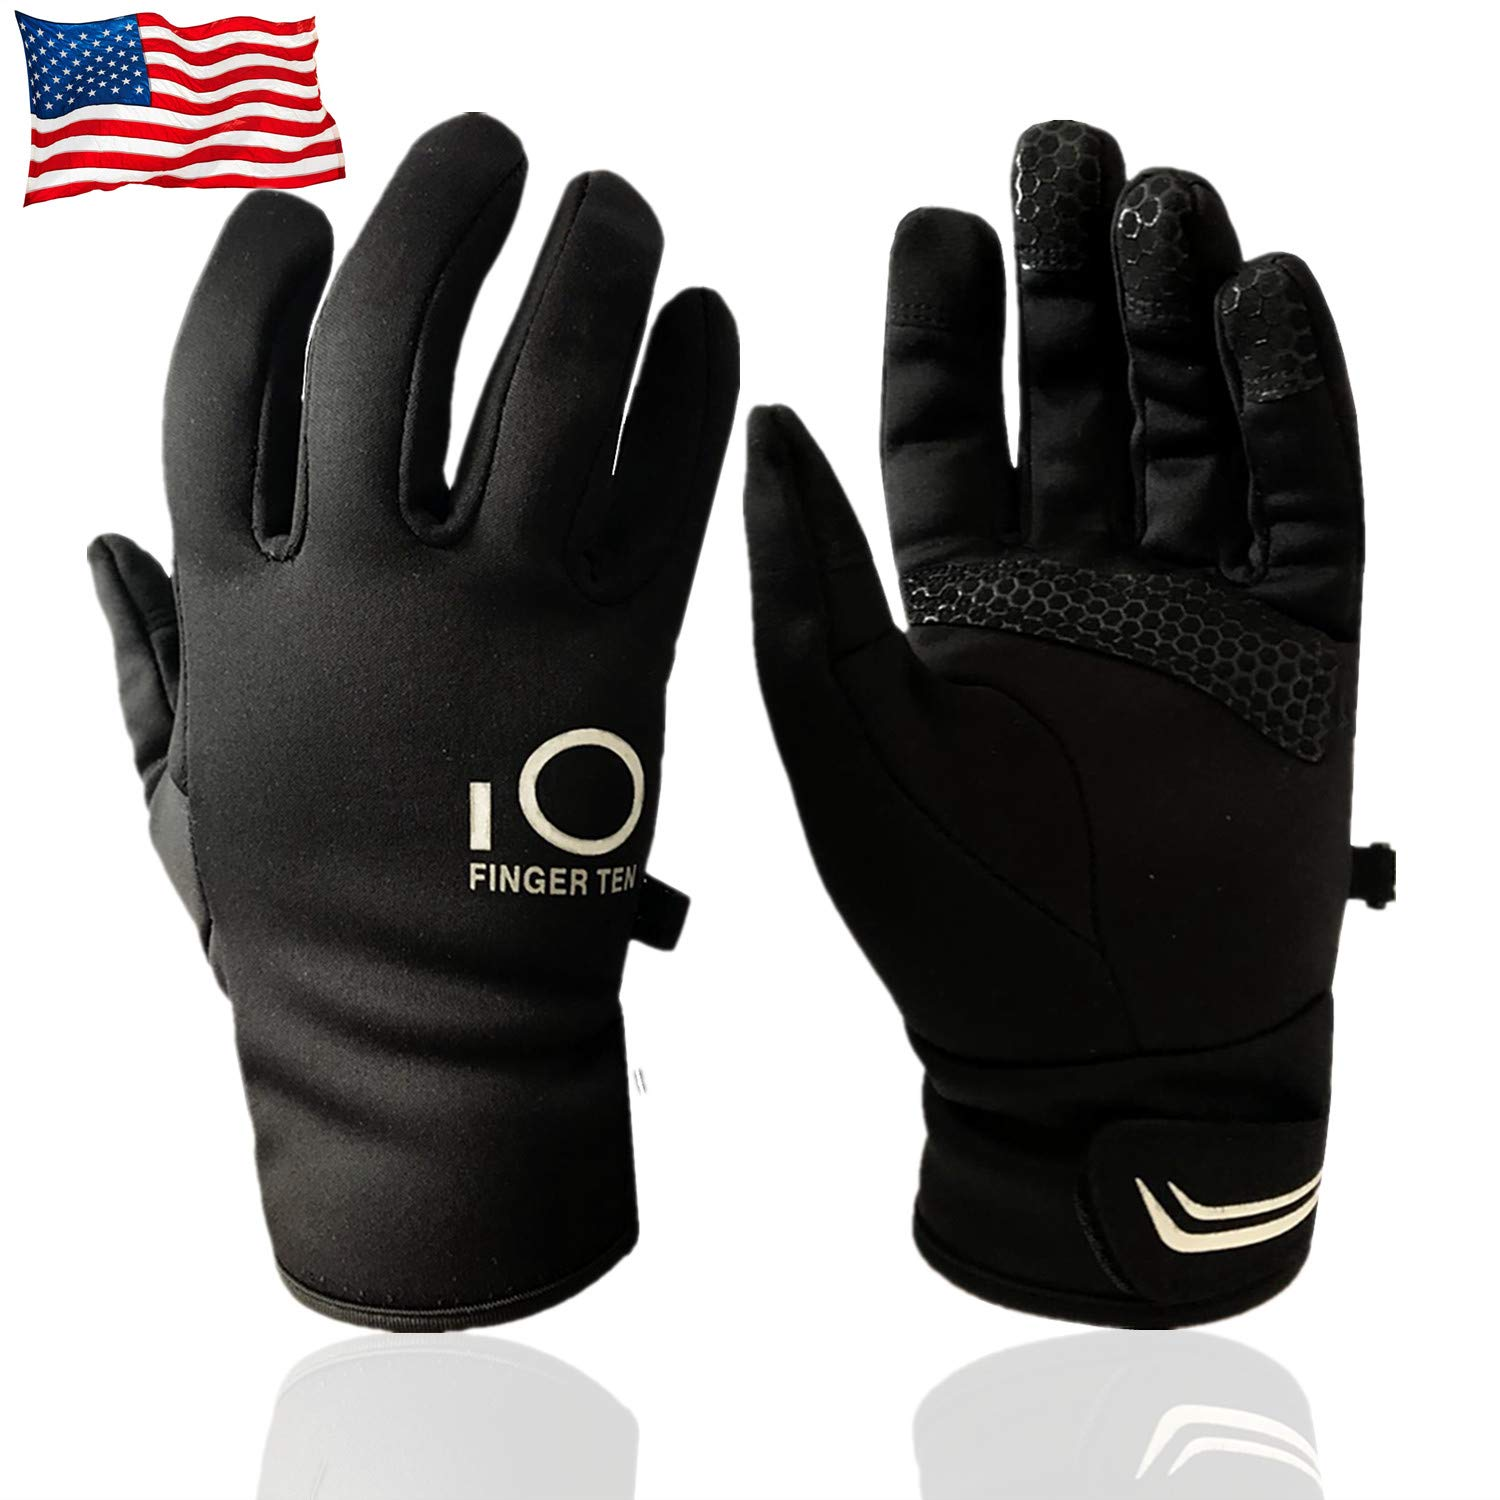 Winter Cycling Gloves Wind and Waterproof Dry Wicking material Light & Tight Cycling Clothing Sporting Goods